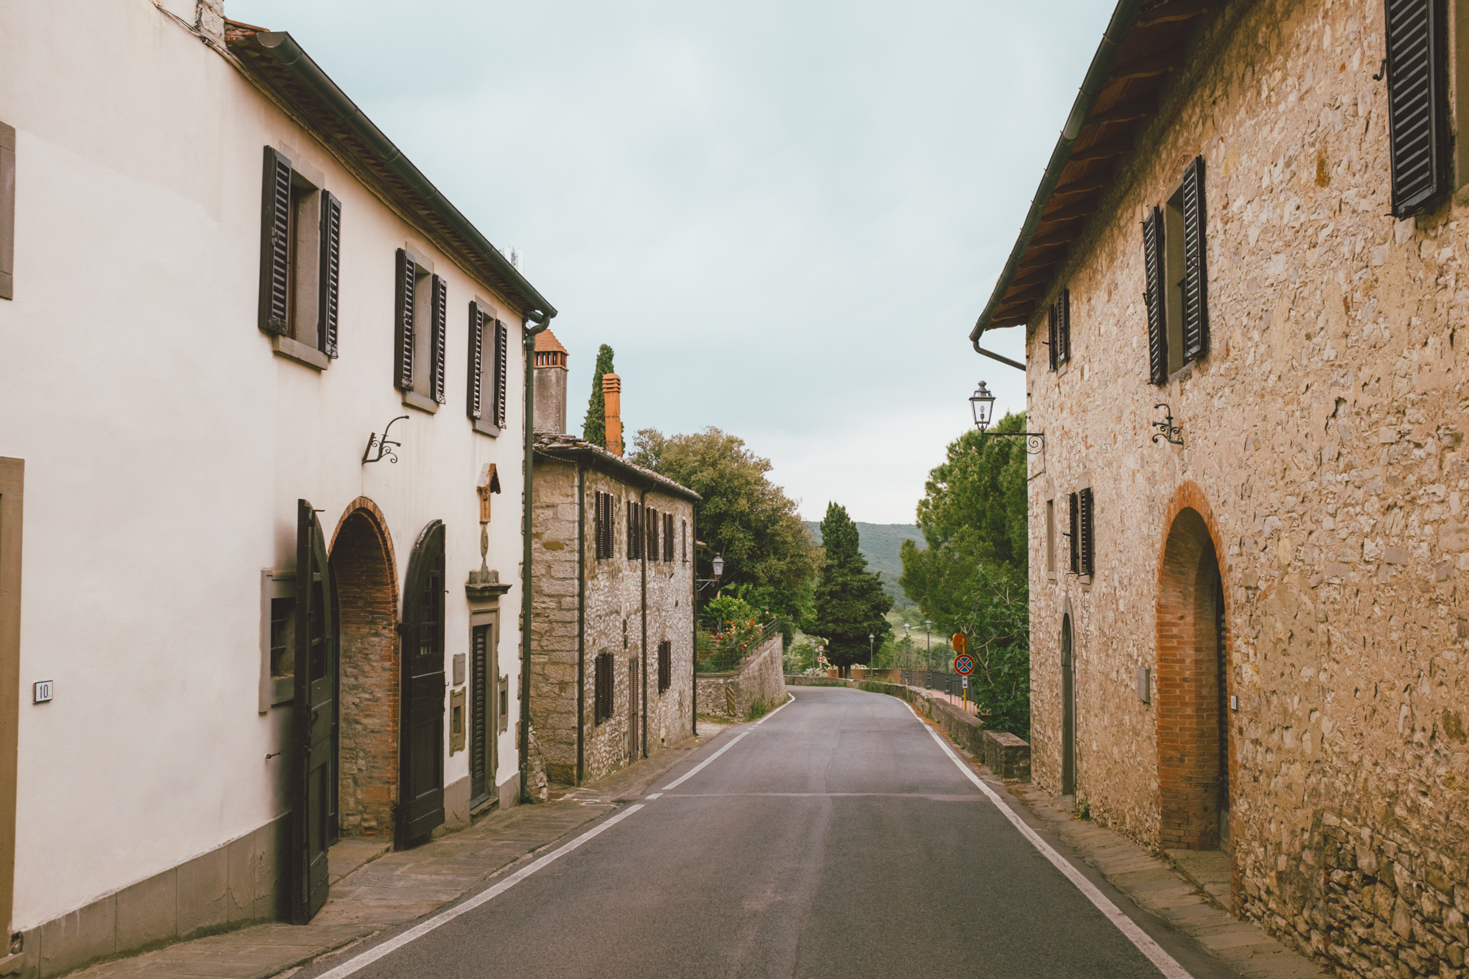 Road Trip in Chianti - Italy Small Town